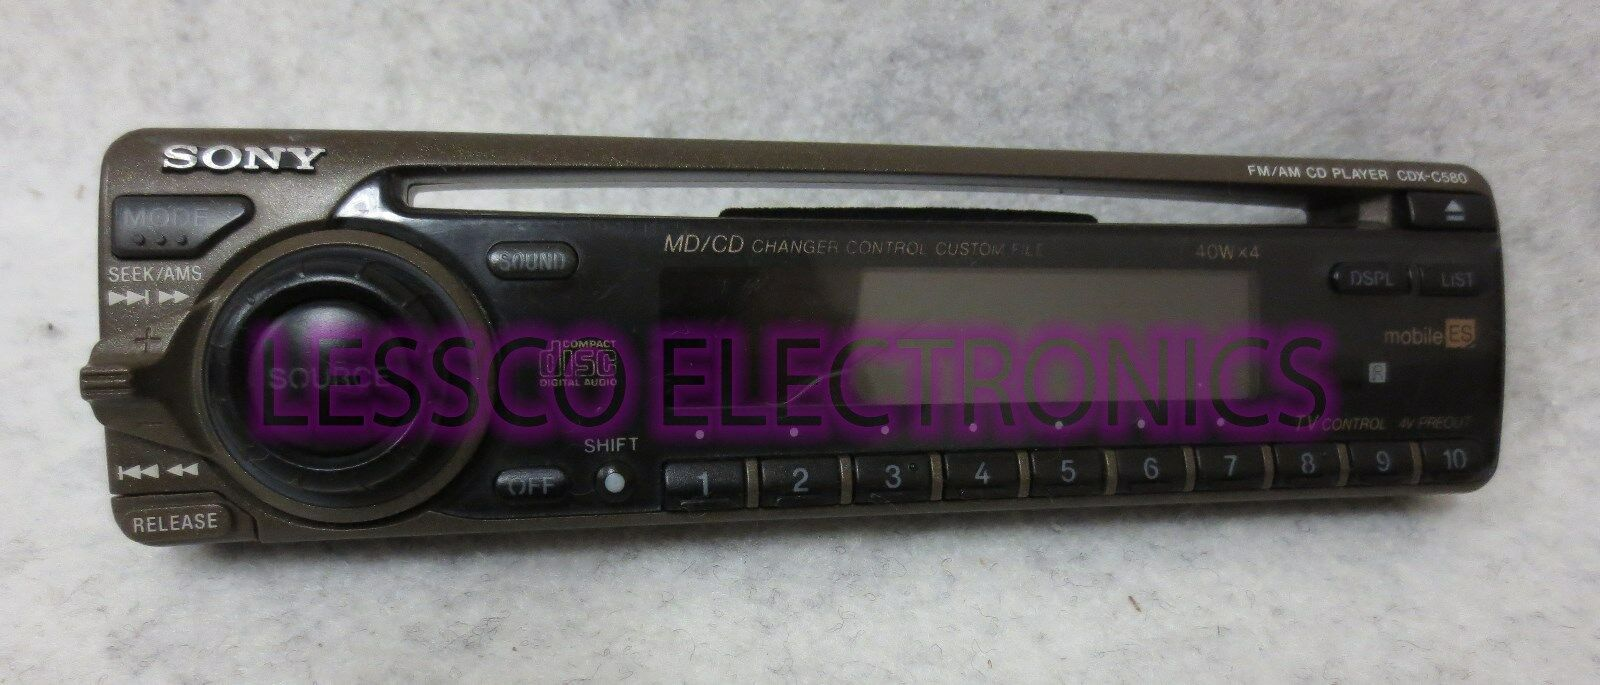 Sony Cdx M620 M800 Wiring Diagram Fm Am Compact Disc Player Car Pictures 1 Of 1only 2 Available Cd Logo